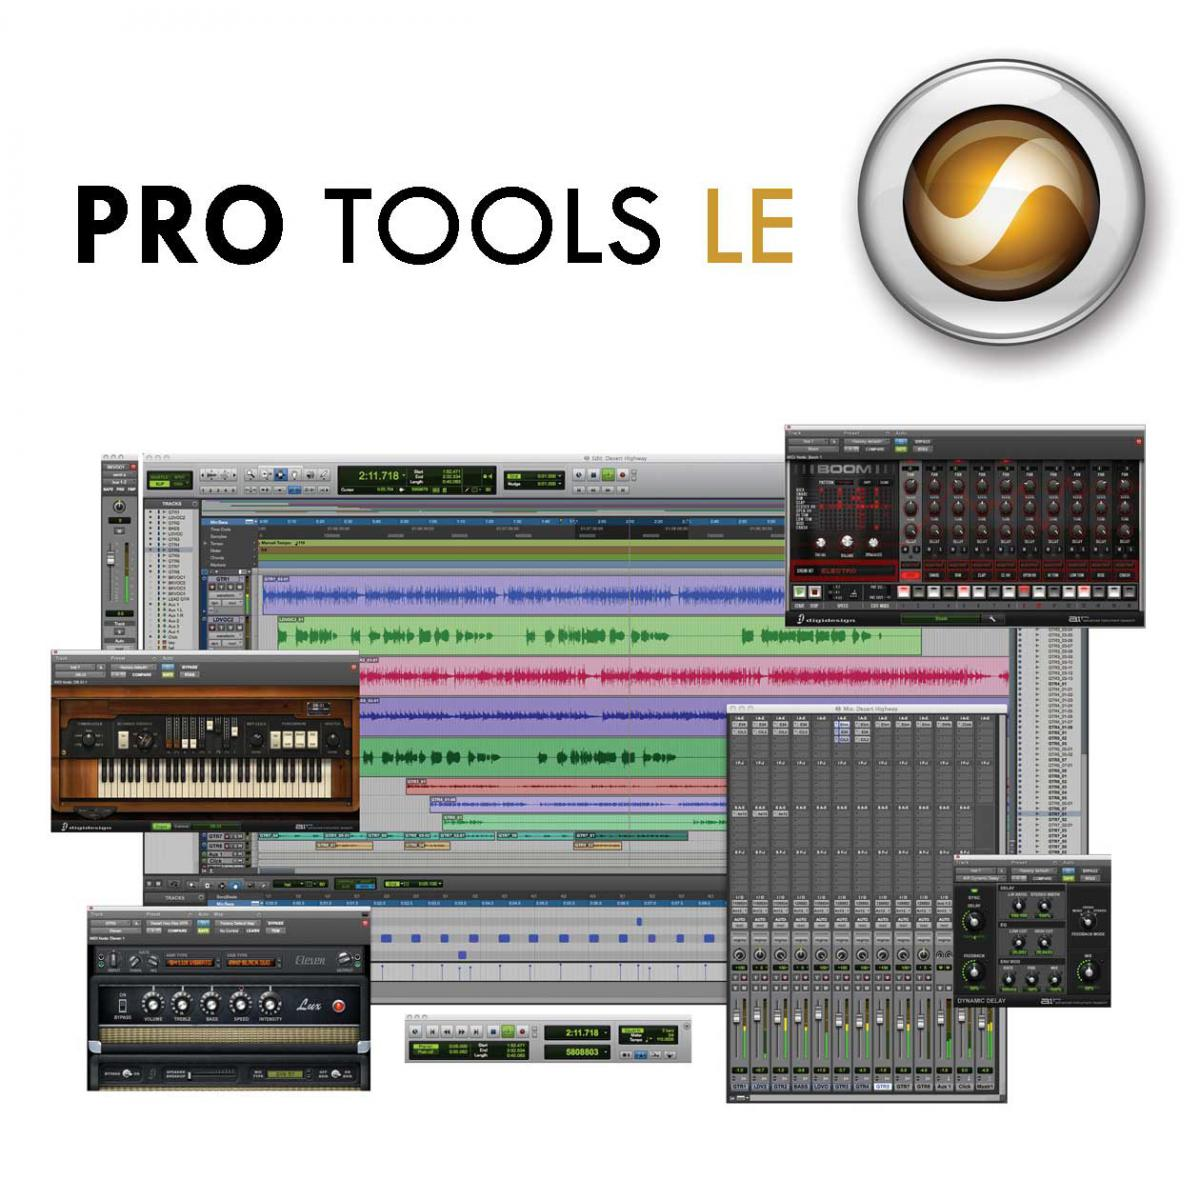 how to open vst plugins on logic pro